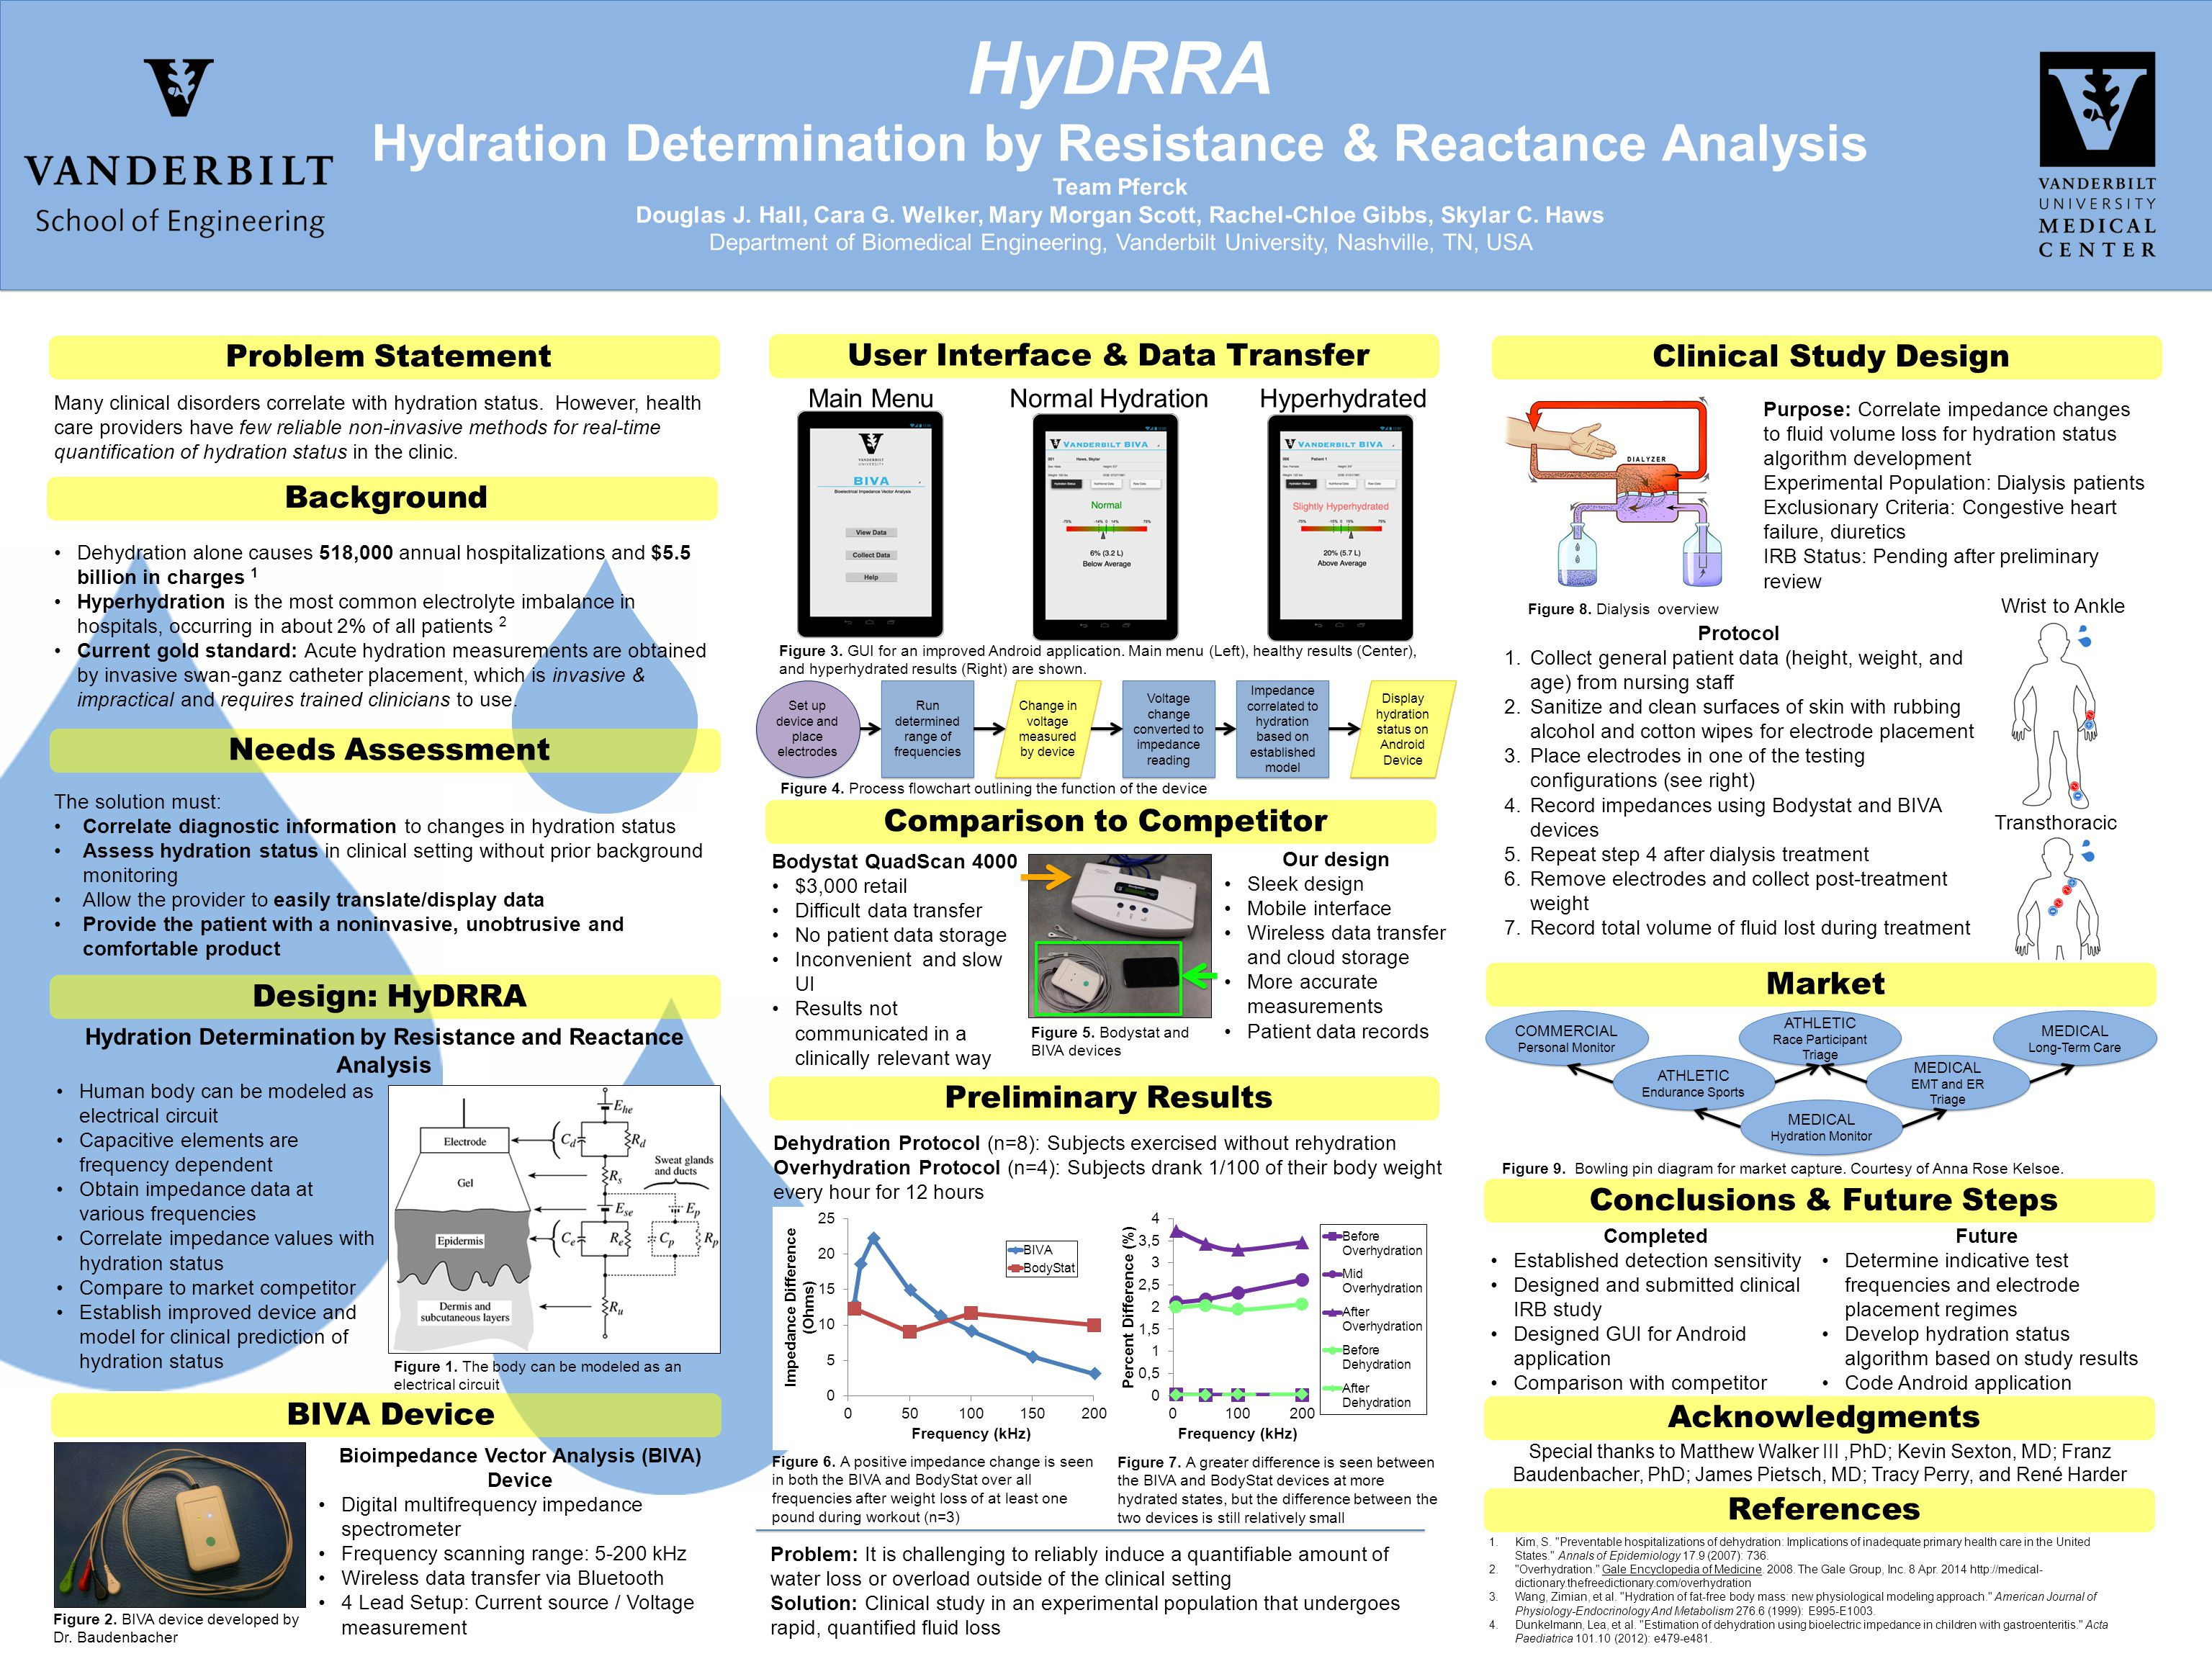 HyDRRA Hydration Determination by Resistance & Reactance Analysis